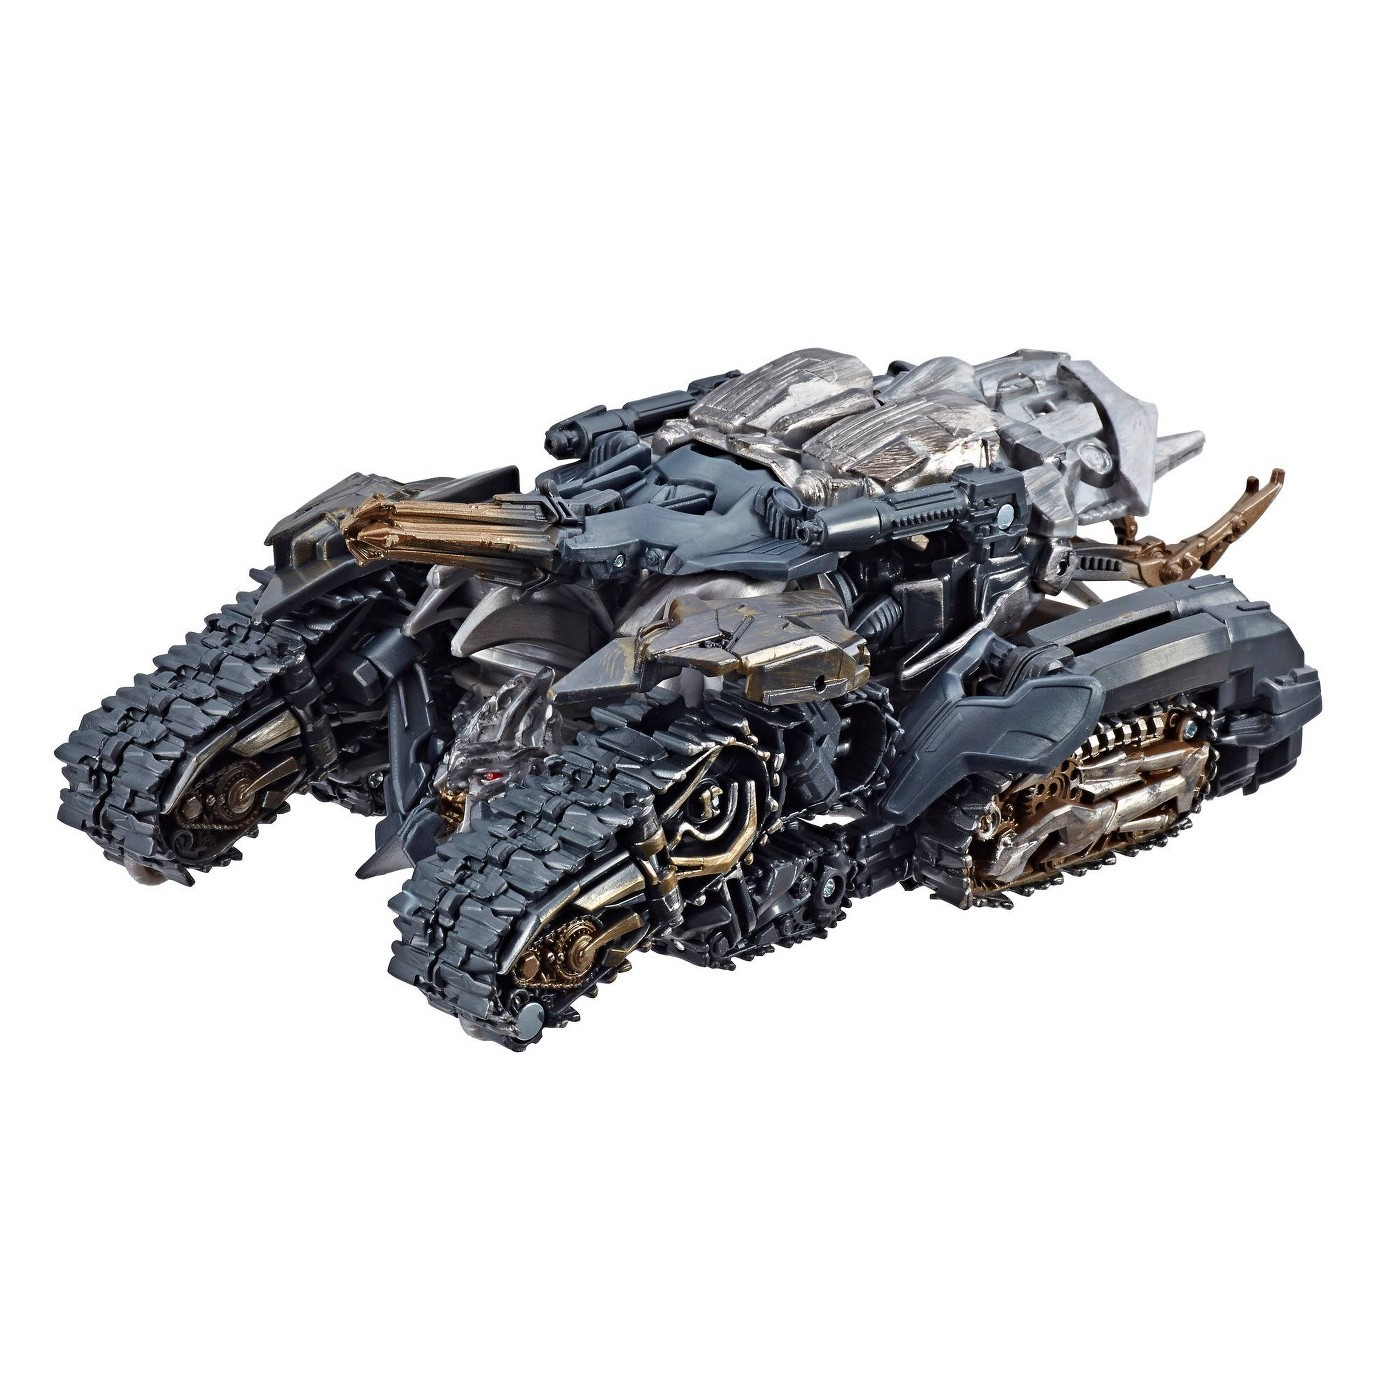 Transformers News: Transformers Studio Series SS-31 Battle Damaged Megatron now Available at Target In Store and Online